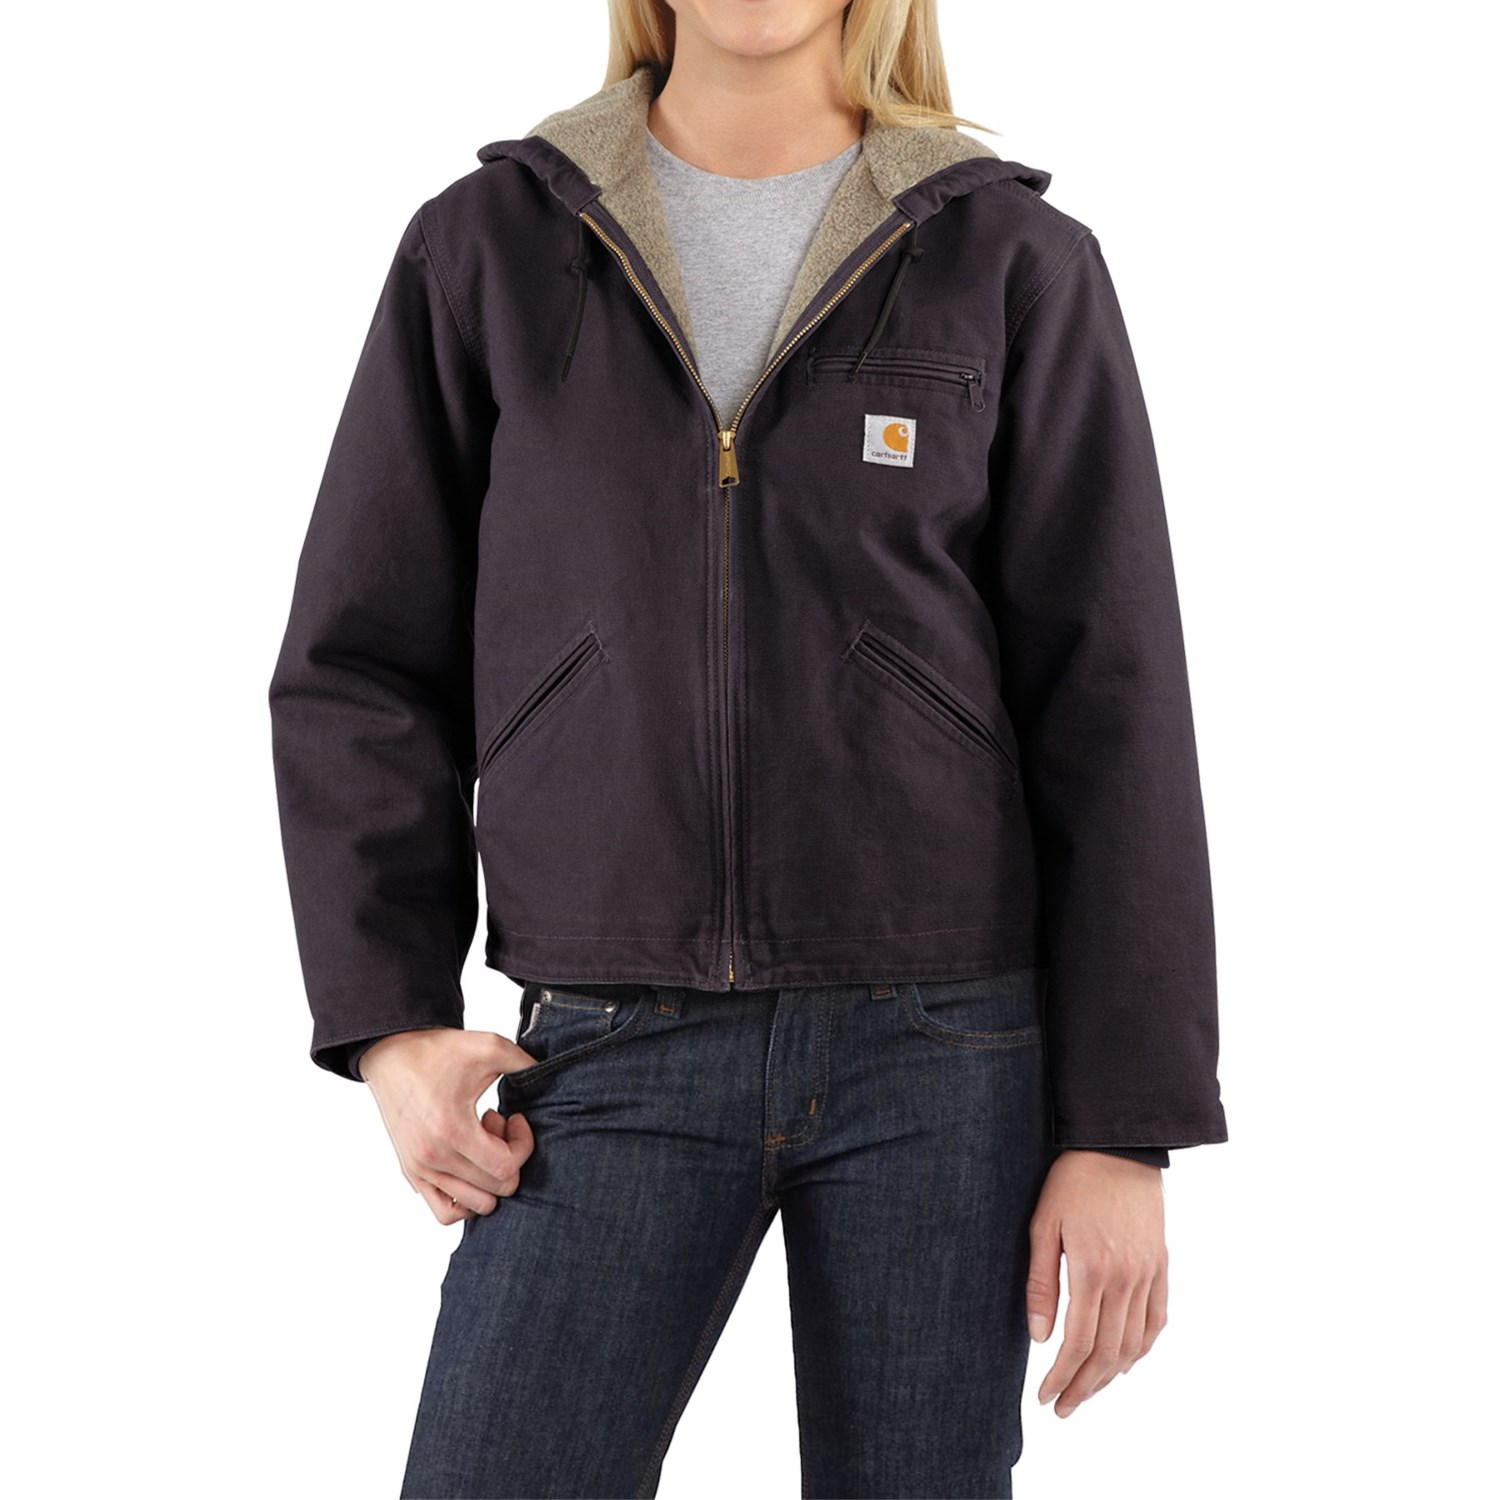 43f5d4bf2d2 Carhartt Sandstone Sierra Jacket For Women. Women S Carhartt Sandstone  Active Jacket. Women S Carhartt Sandstone Active Jacket Leggett Town Country